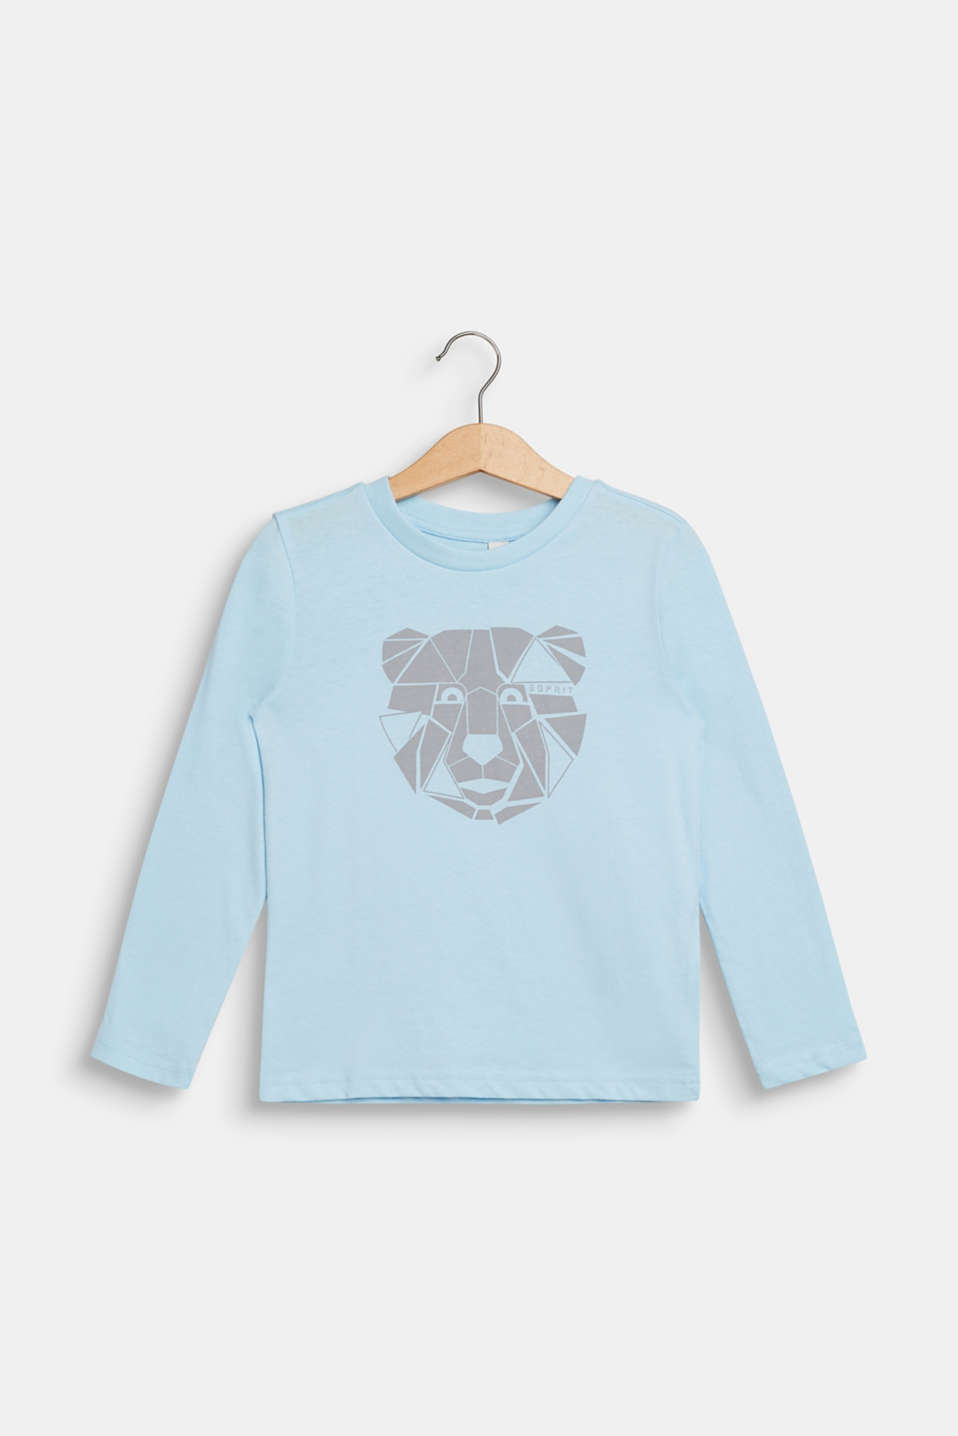 Esprit - Long sleeve top with a bear print, 100% cotton